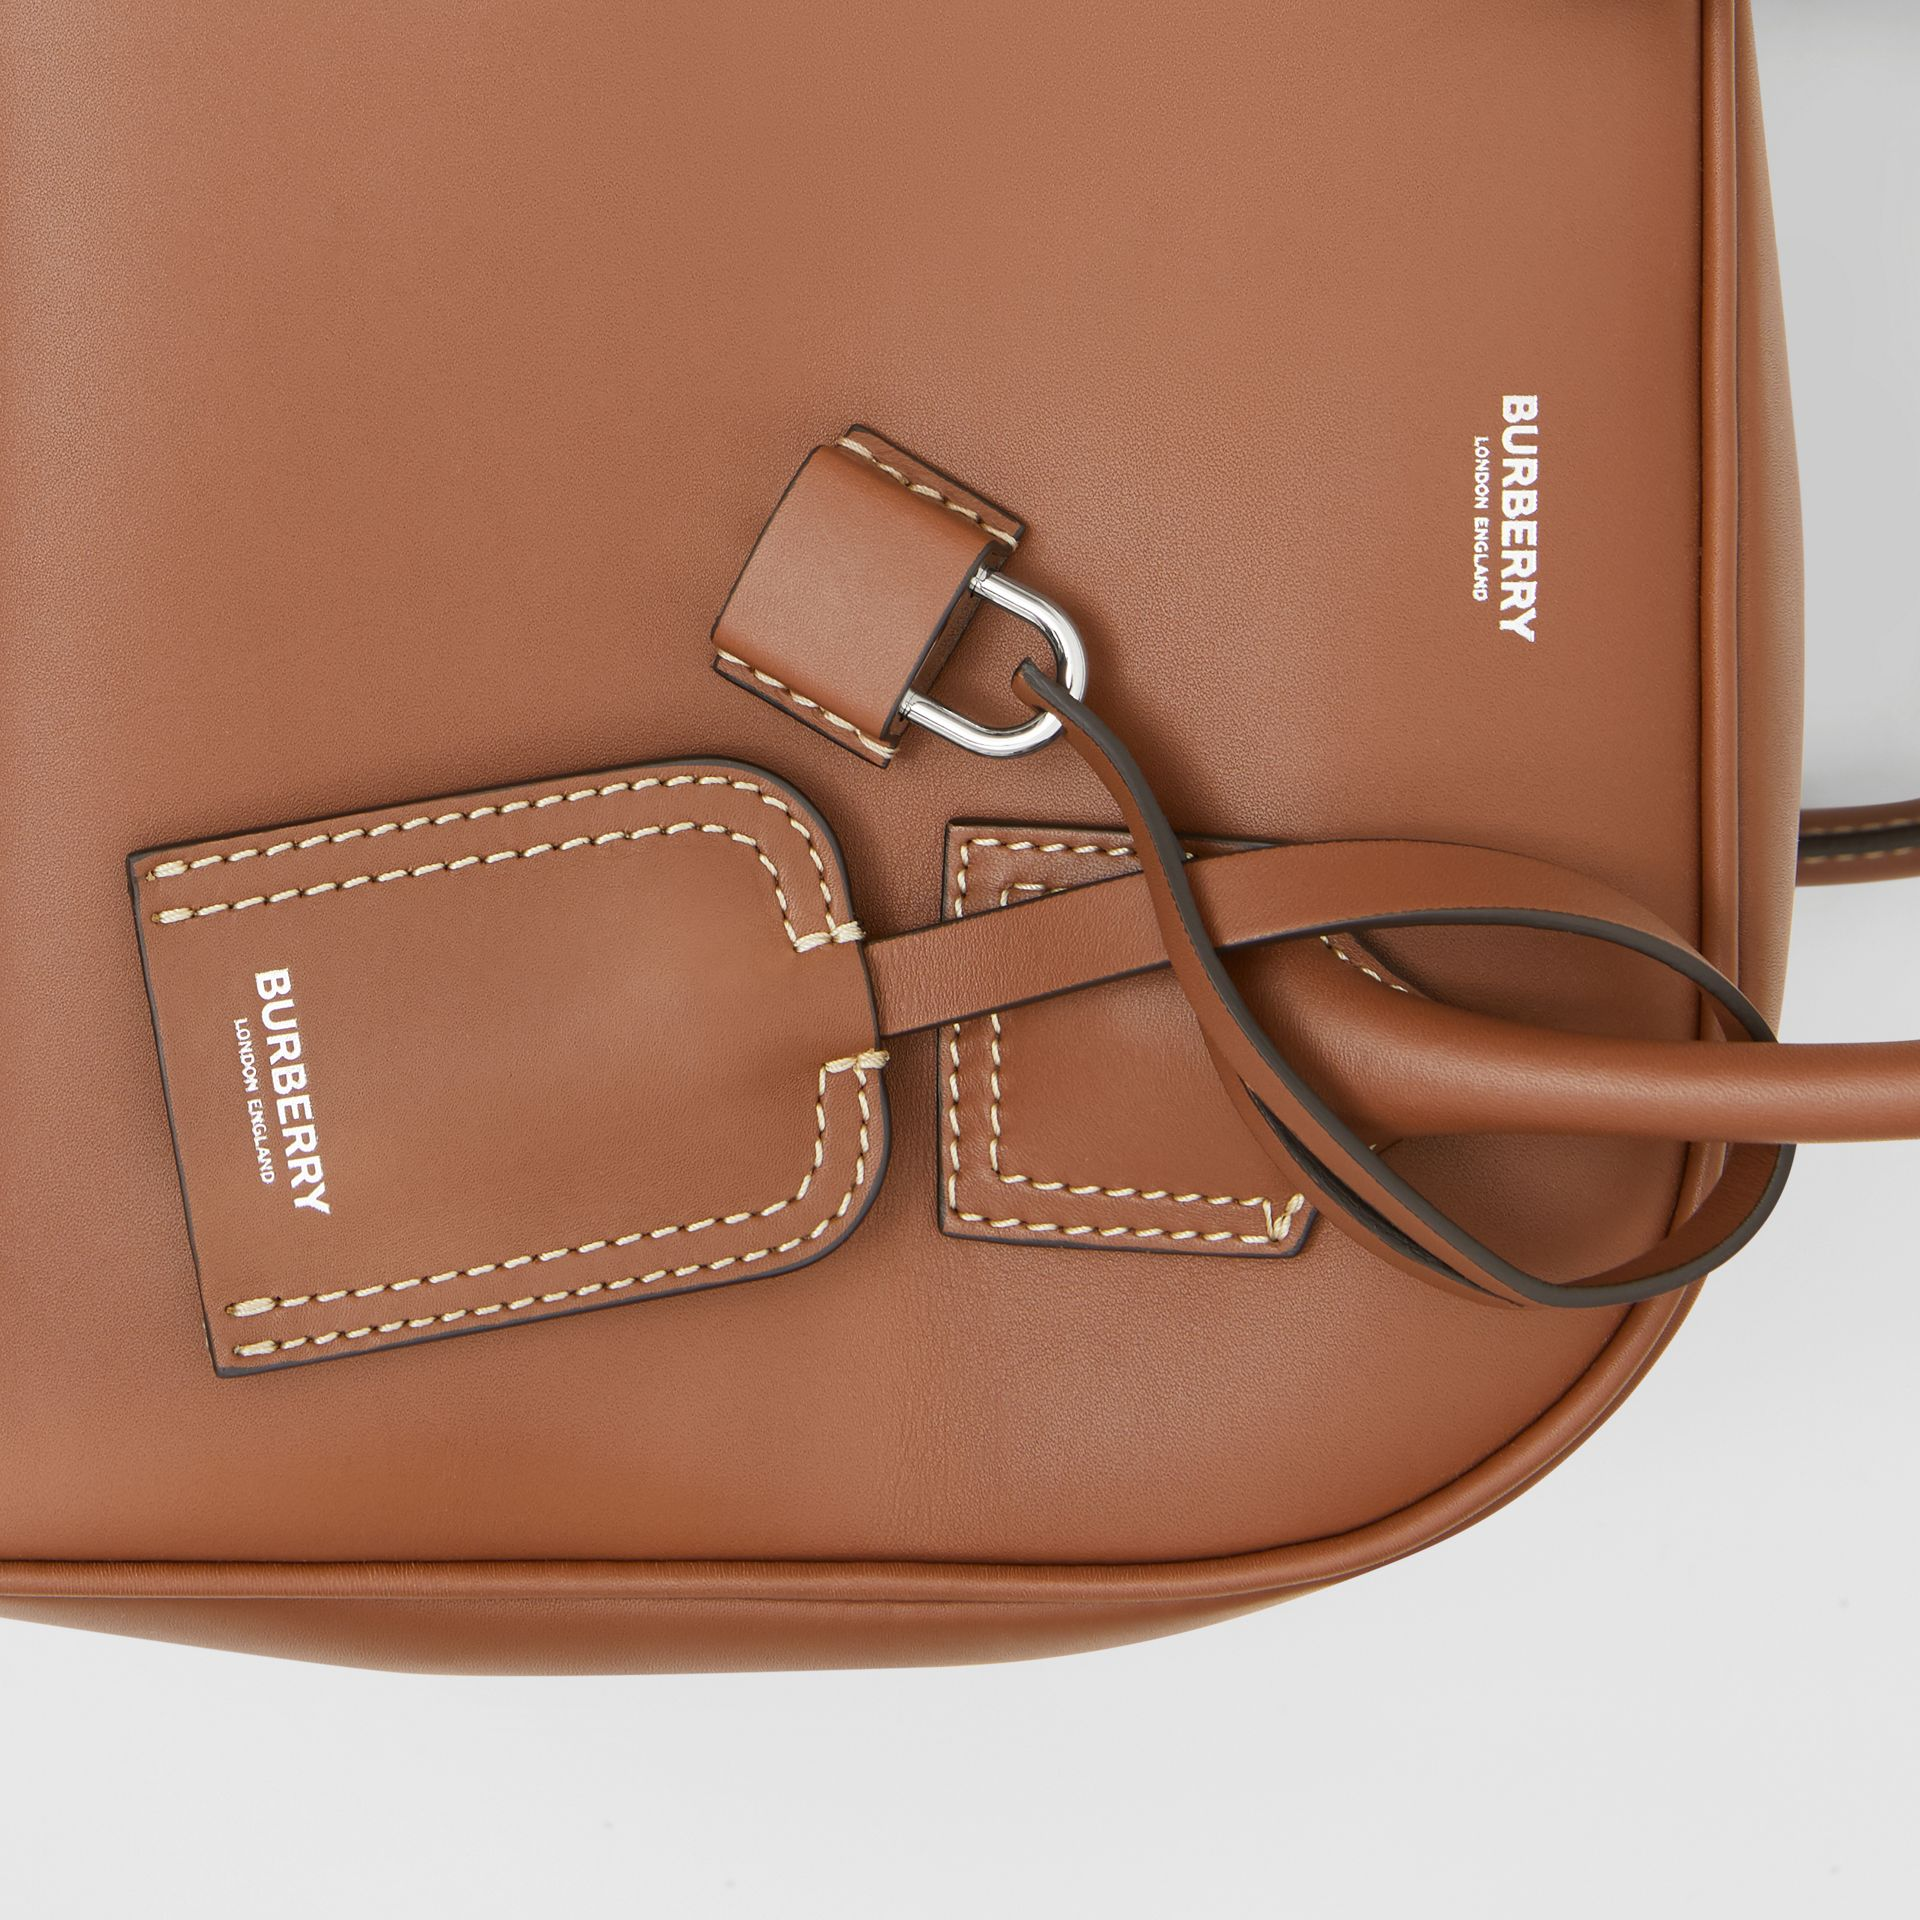 Small Leather Cube Bag in Malt Brown - Women | Burberry Canada - gallery image 1